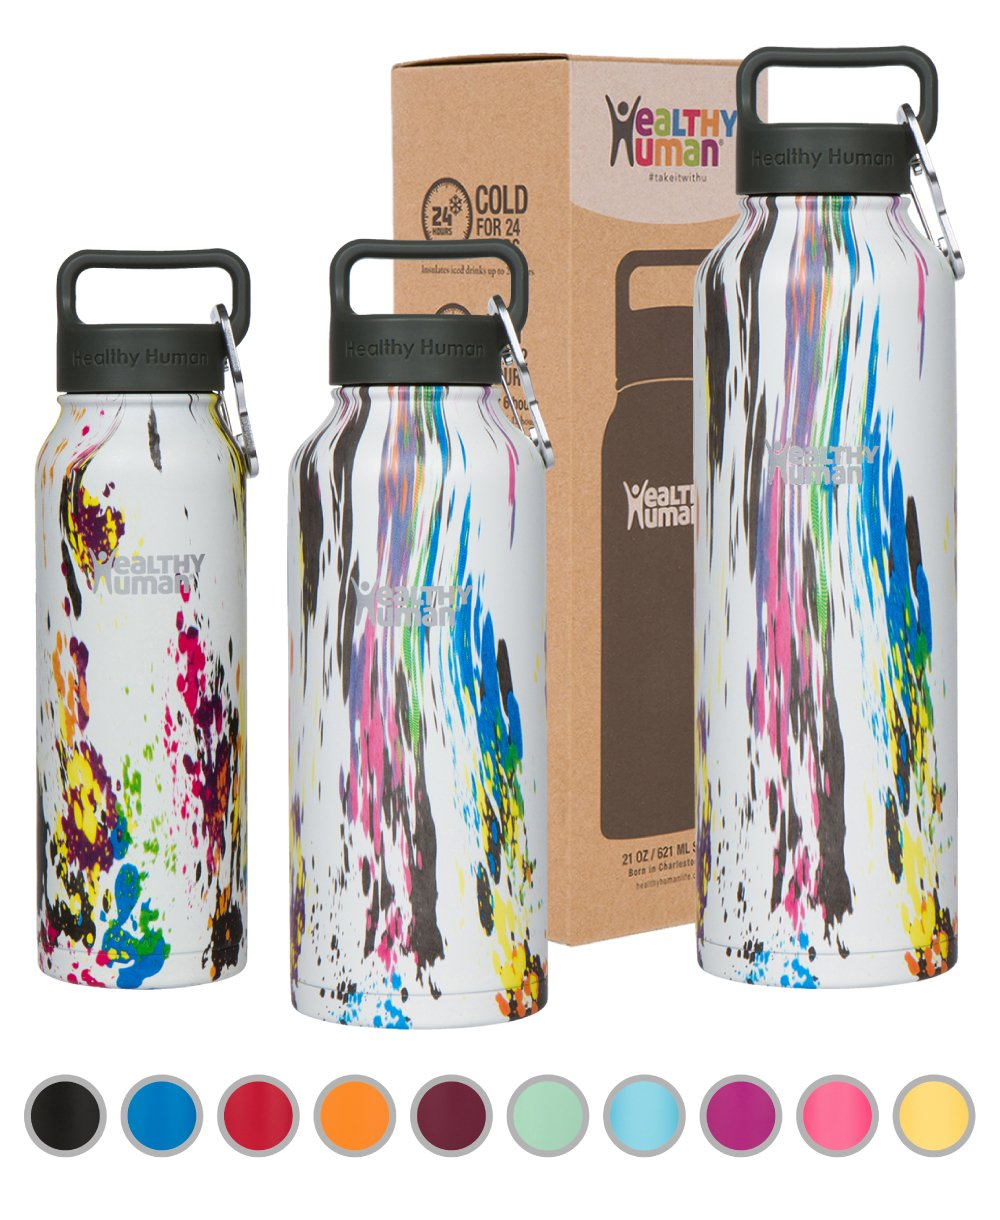 Healthy Human Stainless Steel Vacuum Insulated Water Bottle | Keeps Cold 24 Hours, Hot 12 Hours | Double Walled Water Bottle 32 oz, 40 oz, 21 oz, 16 oz | Carabiner and Hydro Guide